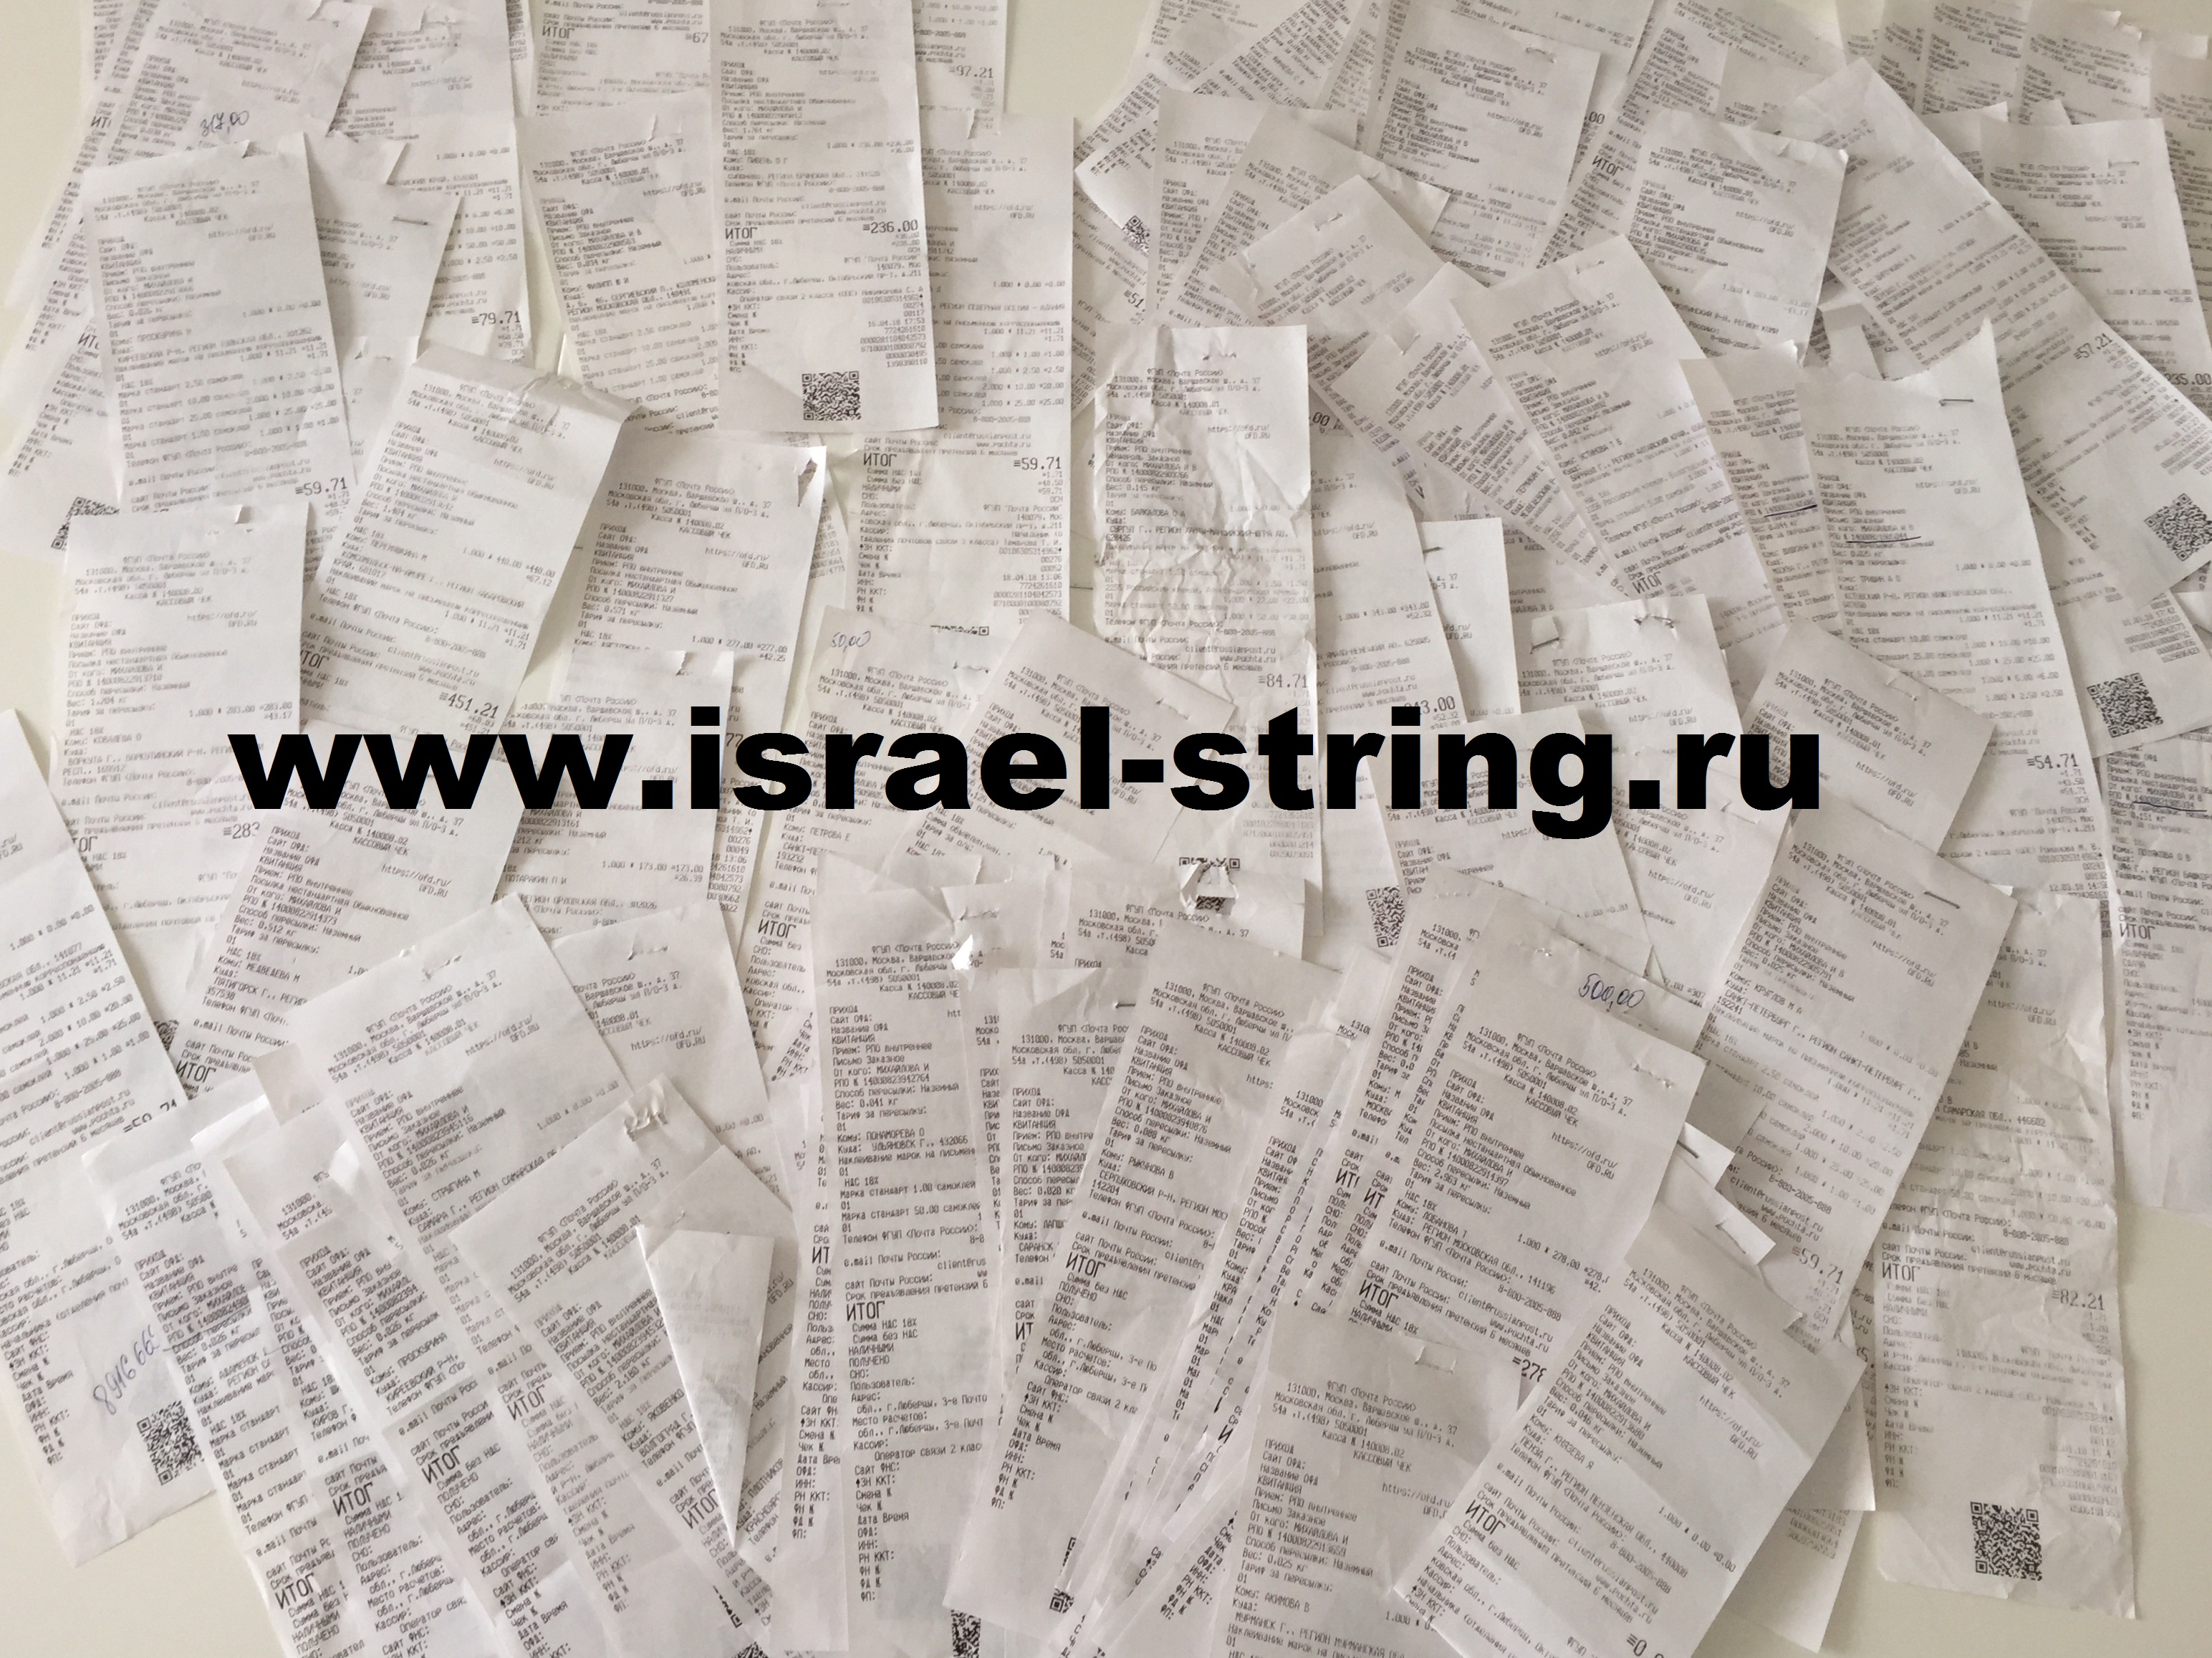 http://israel-string.ru/images/upload/FullSizeRender_21.jpg